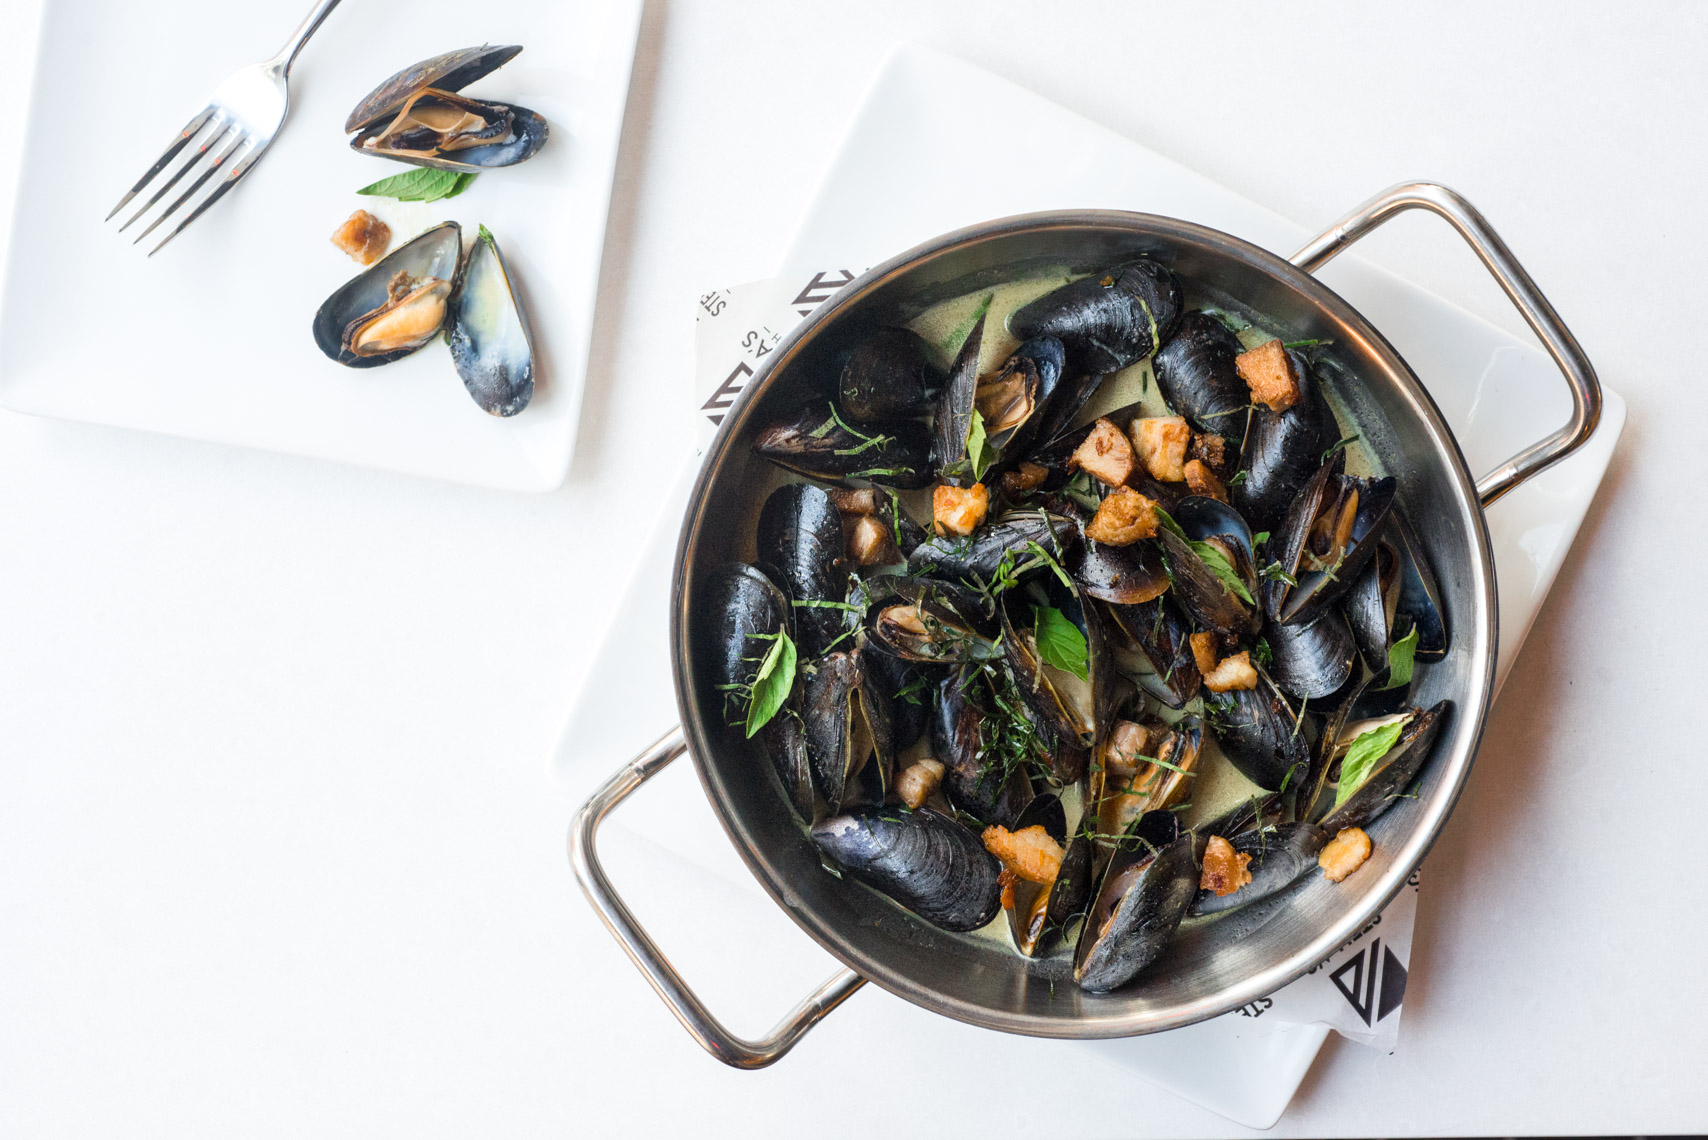 Pot of Mussels Moules Frites with Cilantro Garnish